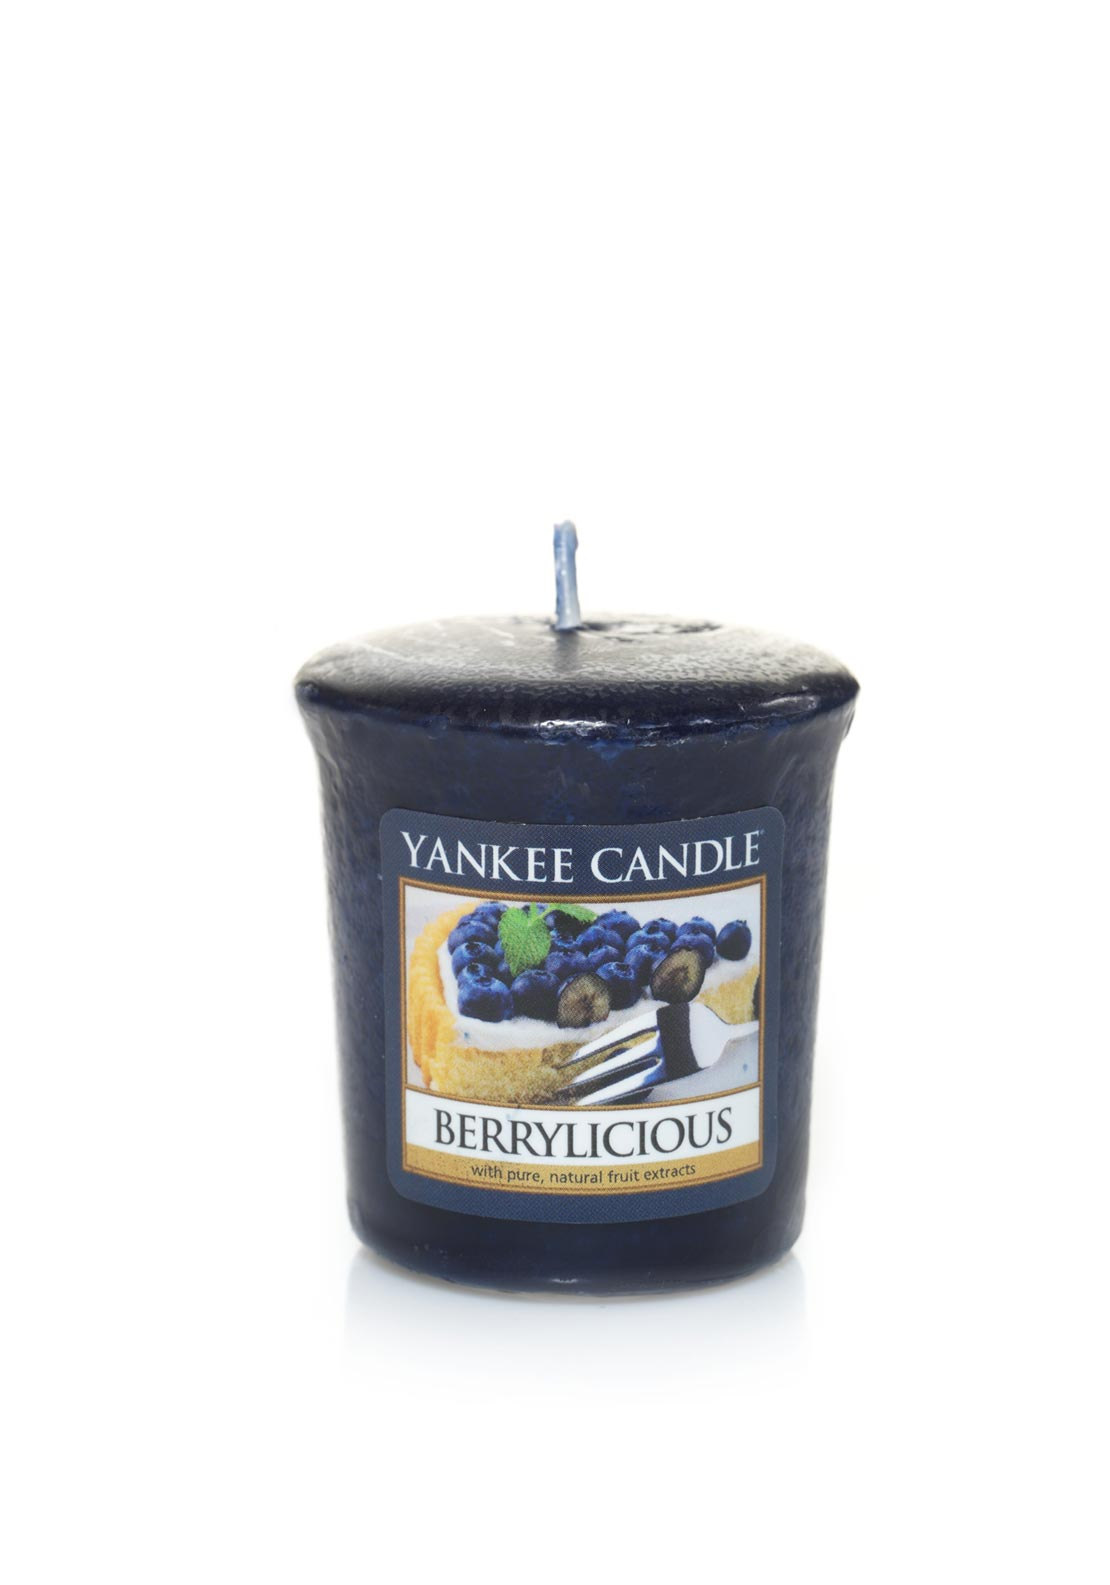 Yankee Candle Sampler Votive Candle, Berrylicious